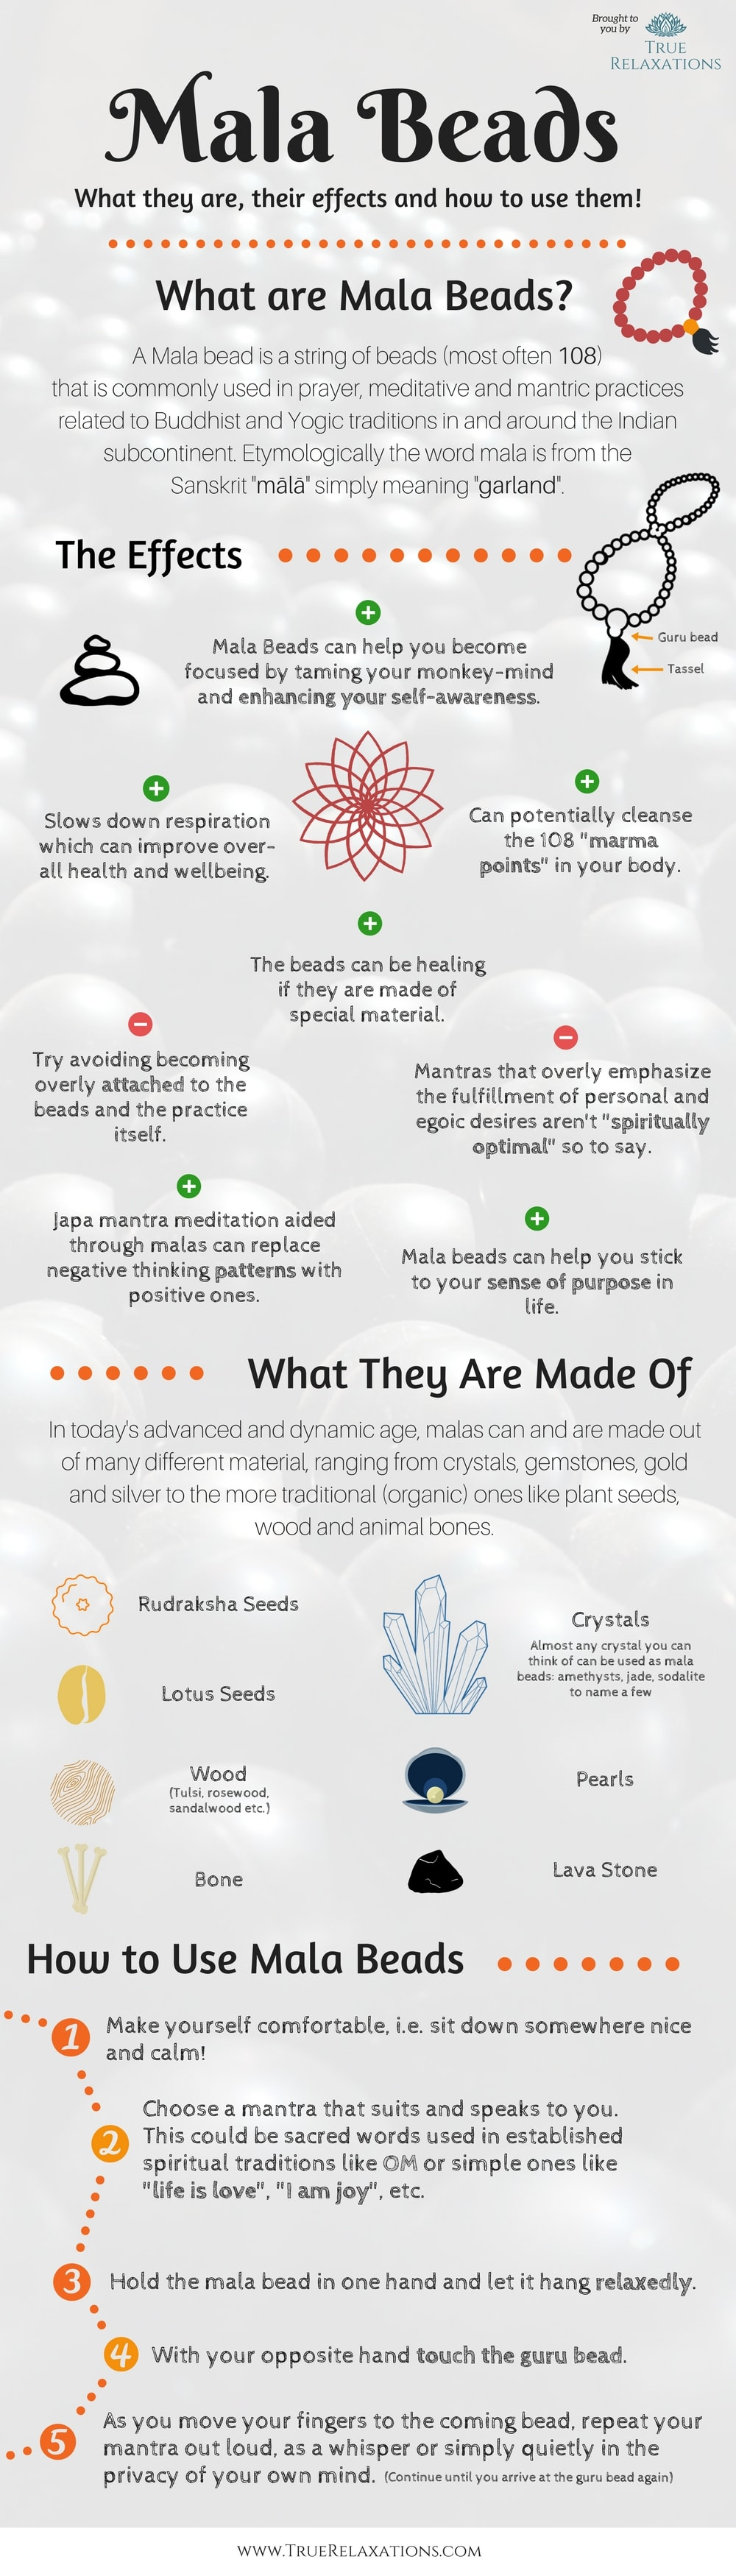 Mala beads benefits and material and how to use them